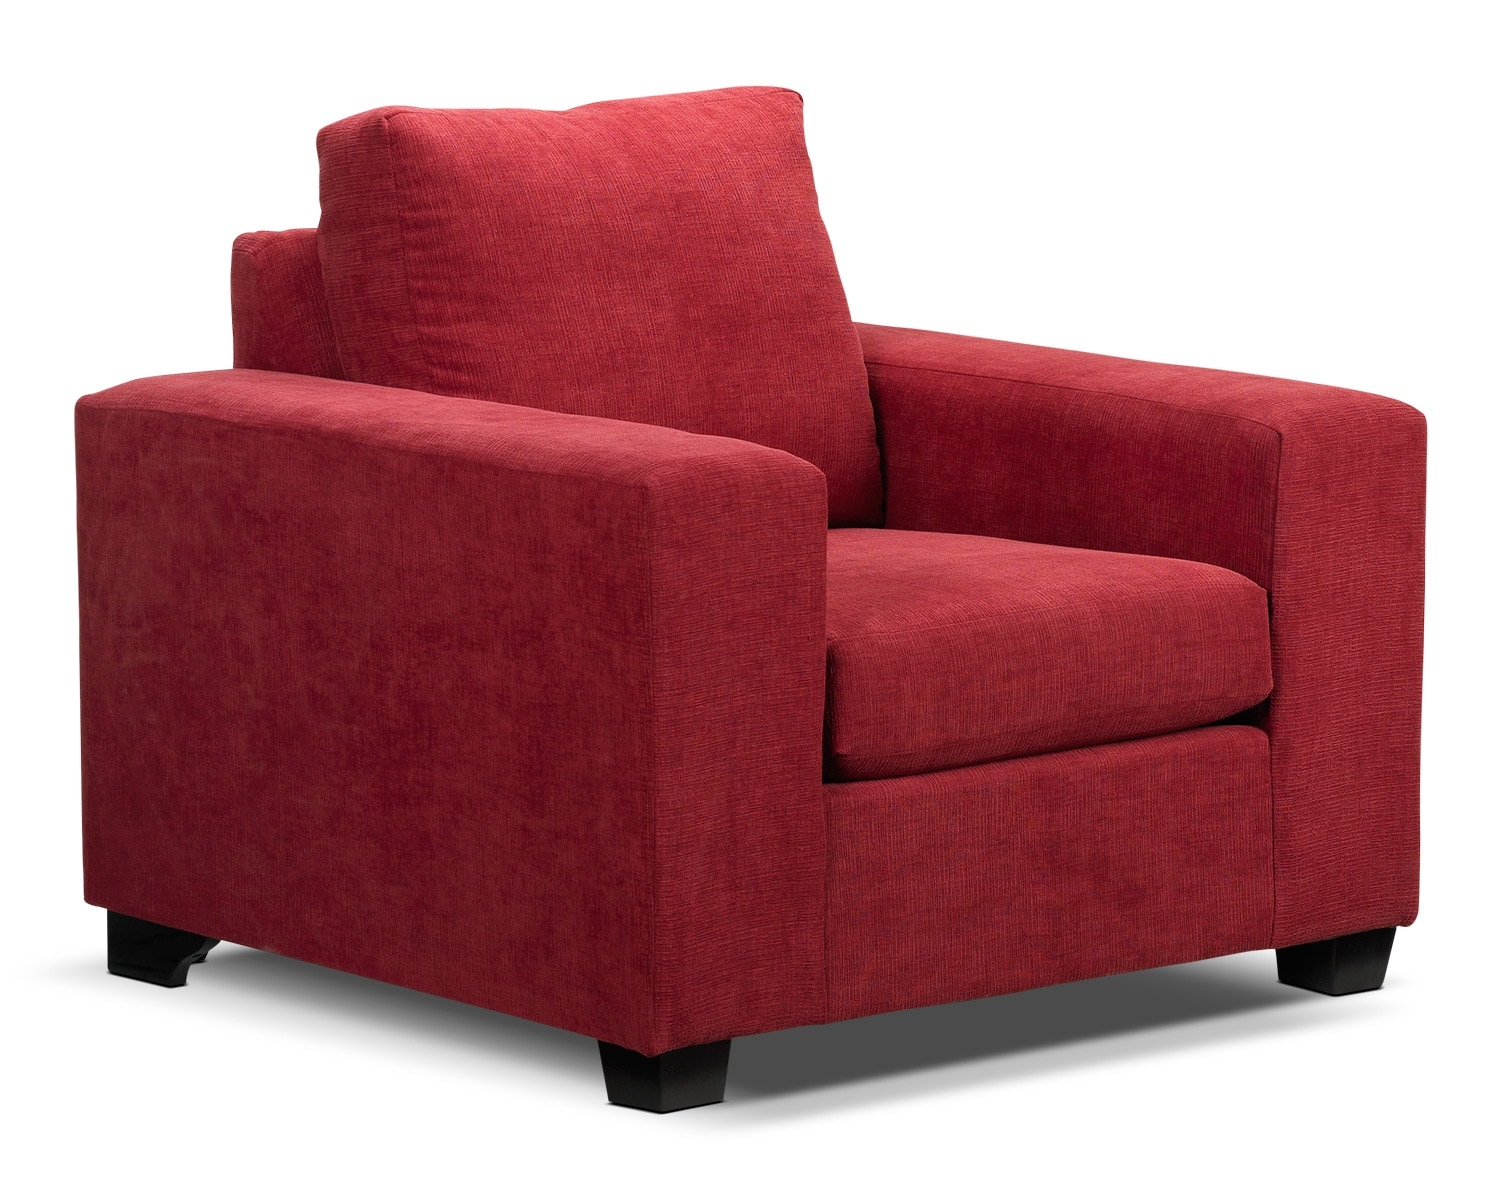 Fava Chair - Red